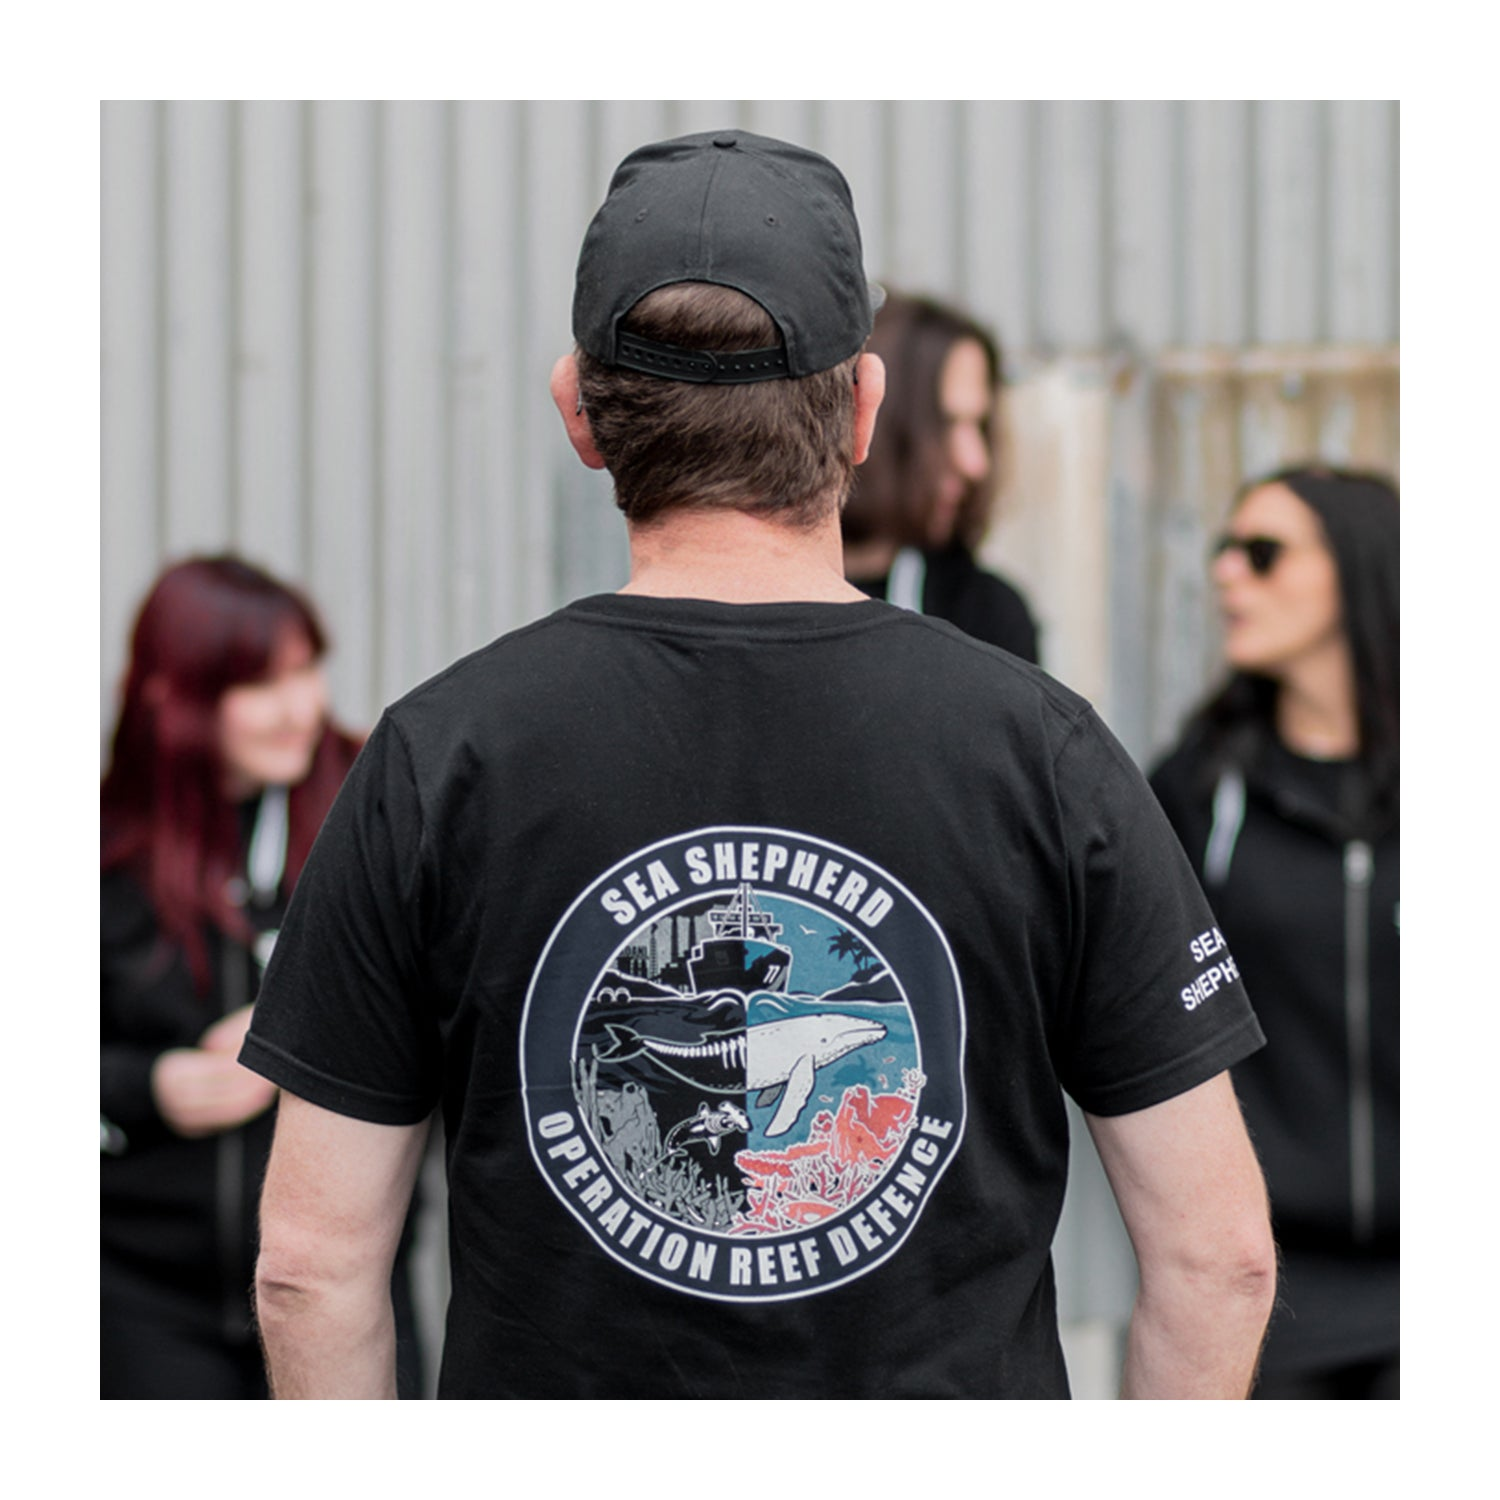 Operation Reef Defence Unisex Tee